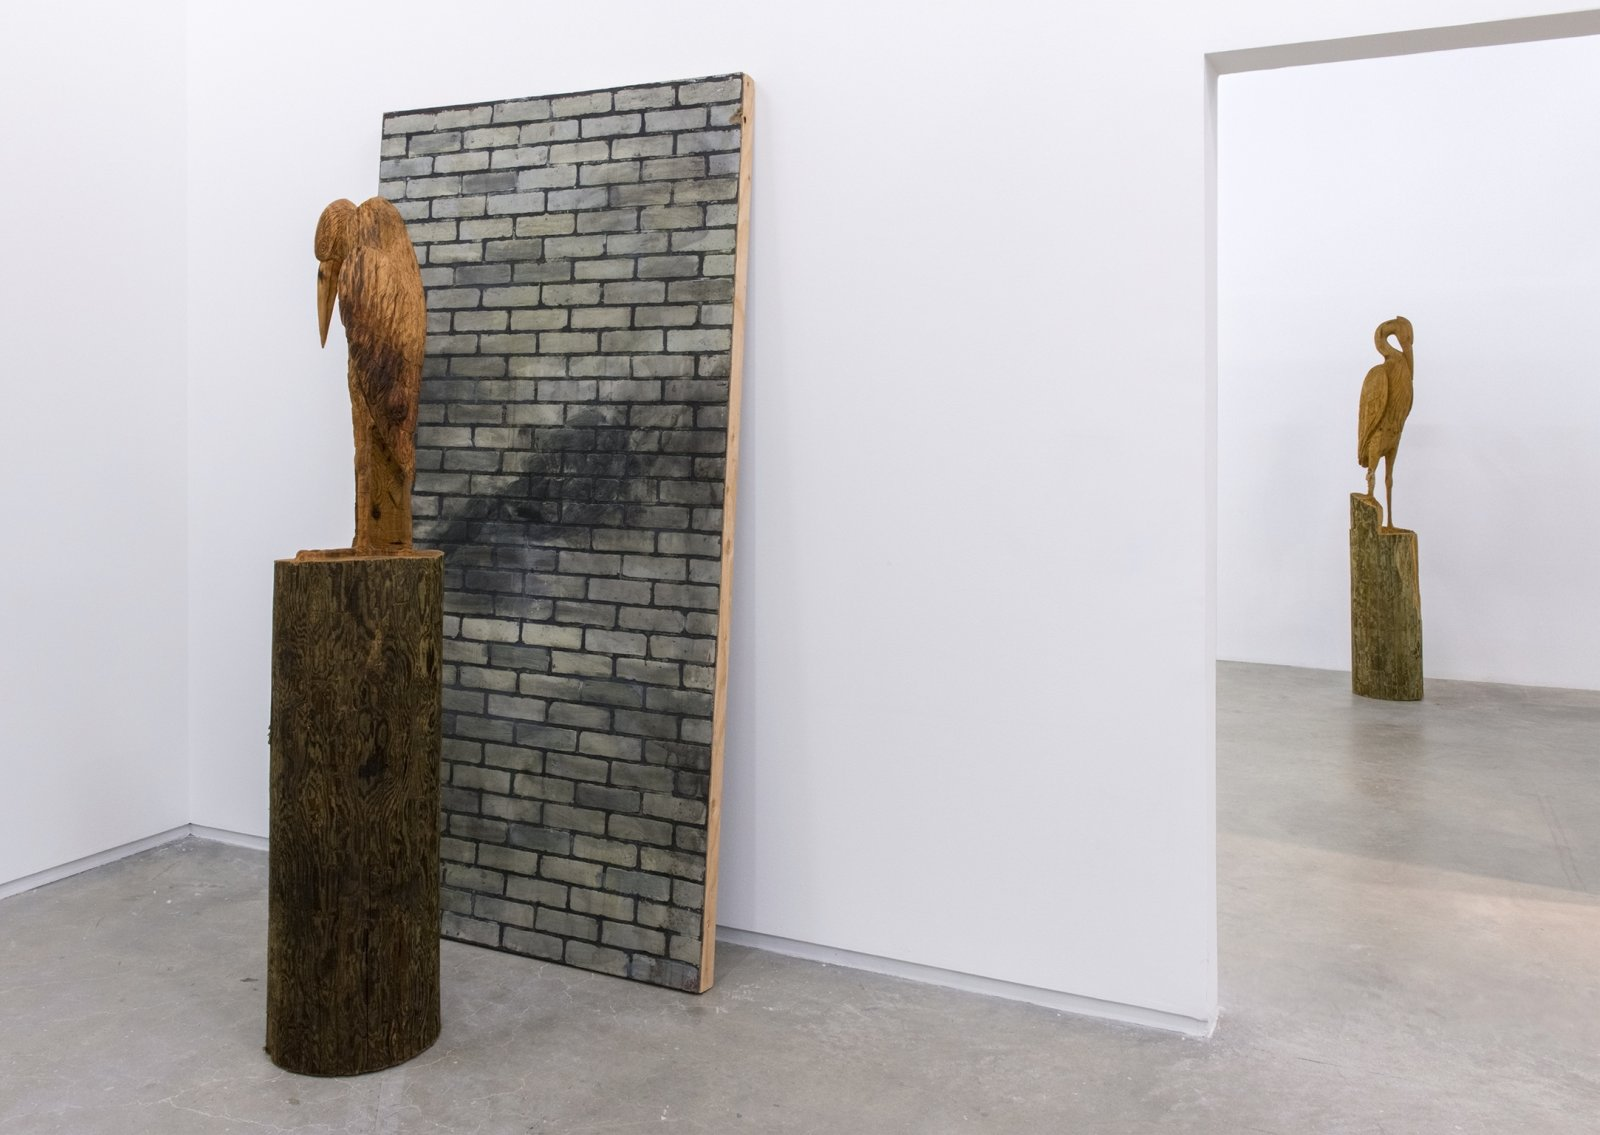 ​Geoffrey Farmer, Good And Evil, 2014, decommissioned cedar telephone poles, chainsaw carving by Brigitte Lochhead, wooden wall brick façade, Good: 77 x 15 x 14 in. (196 x 38 x 36 cm), Evil: 82 x 14 x 13 in. (208 x 36 x 33 cm)​ by Geoffrey Farmer